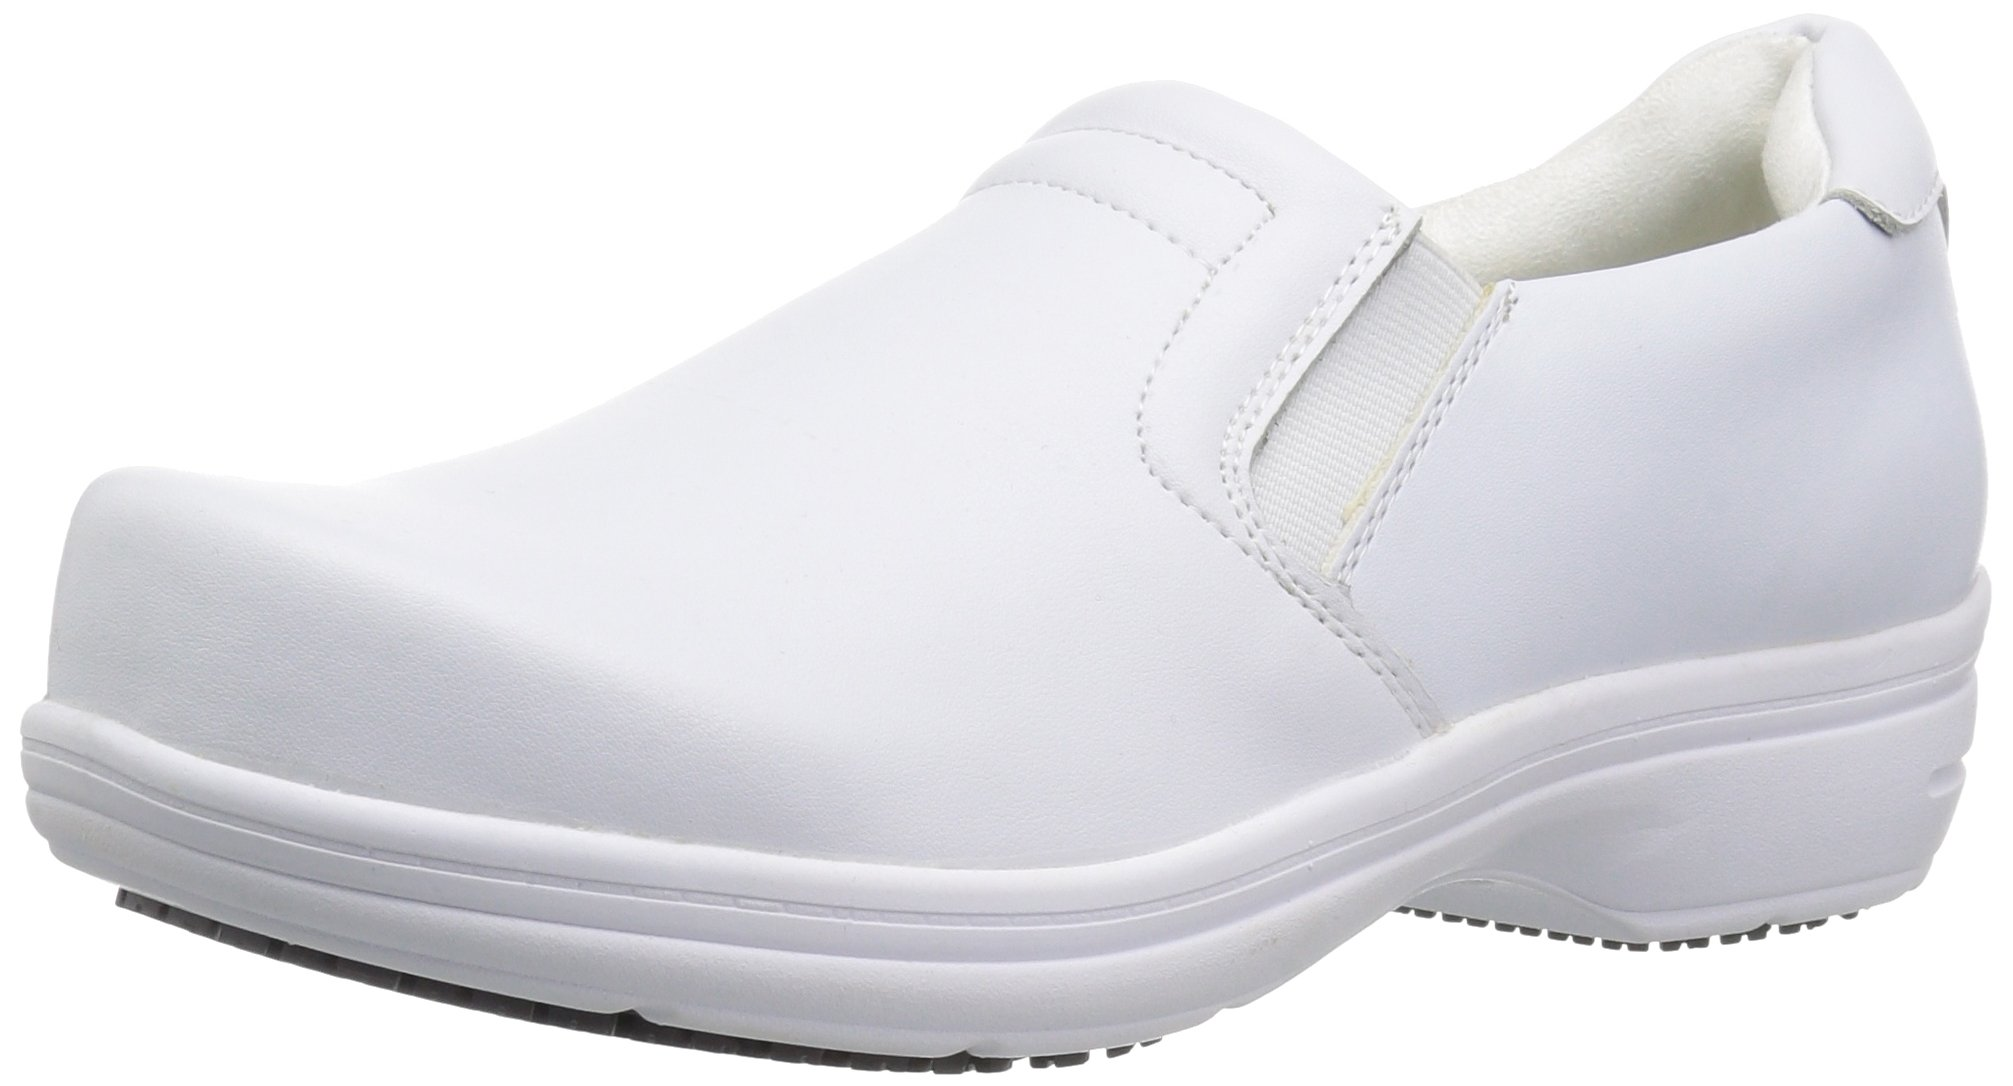 Easy Works Women's Bind Health Care Professional Shoe, White, 11 W US by Easy Works